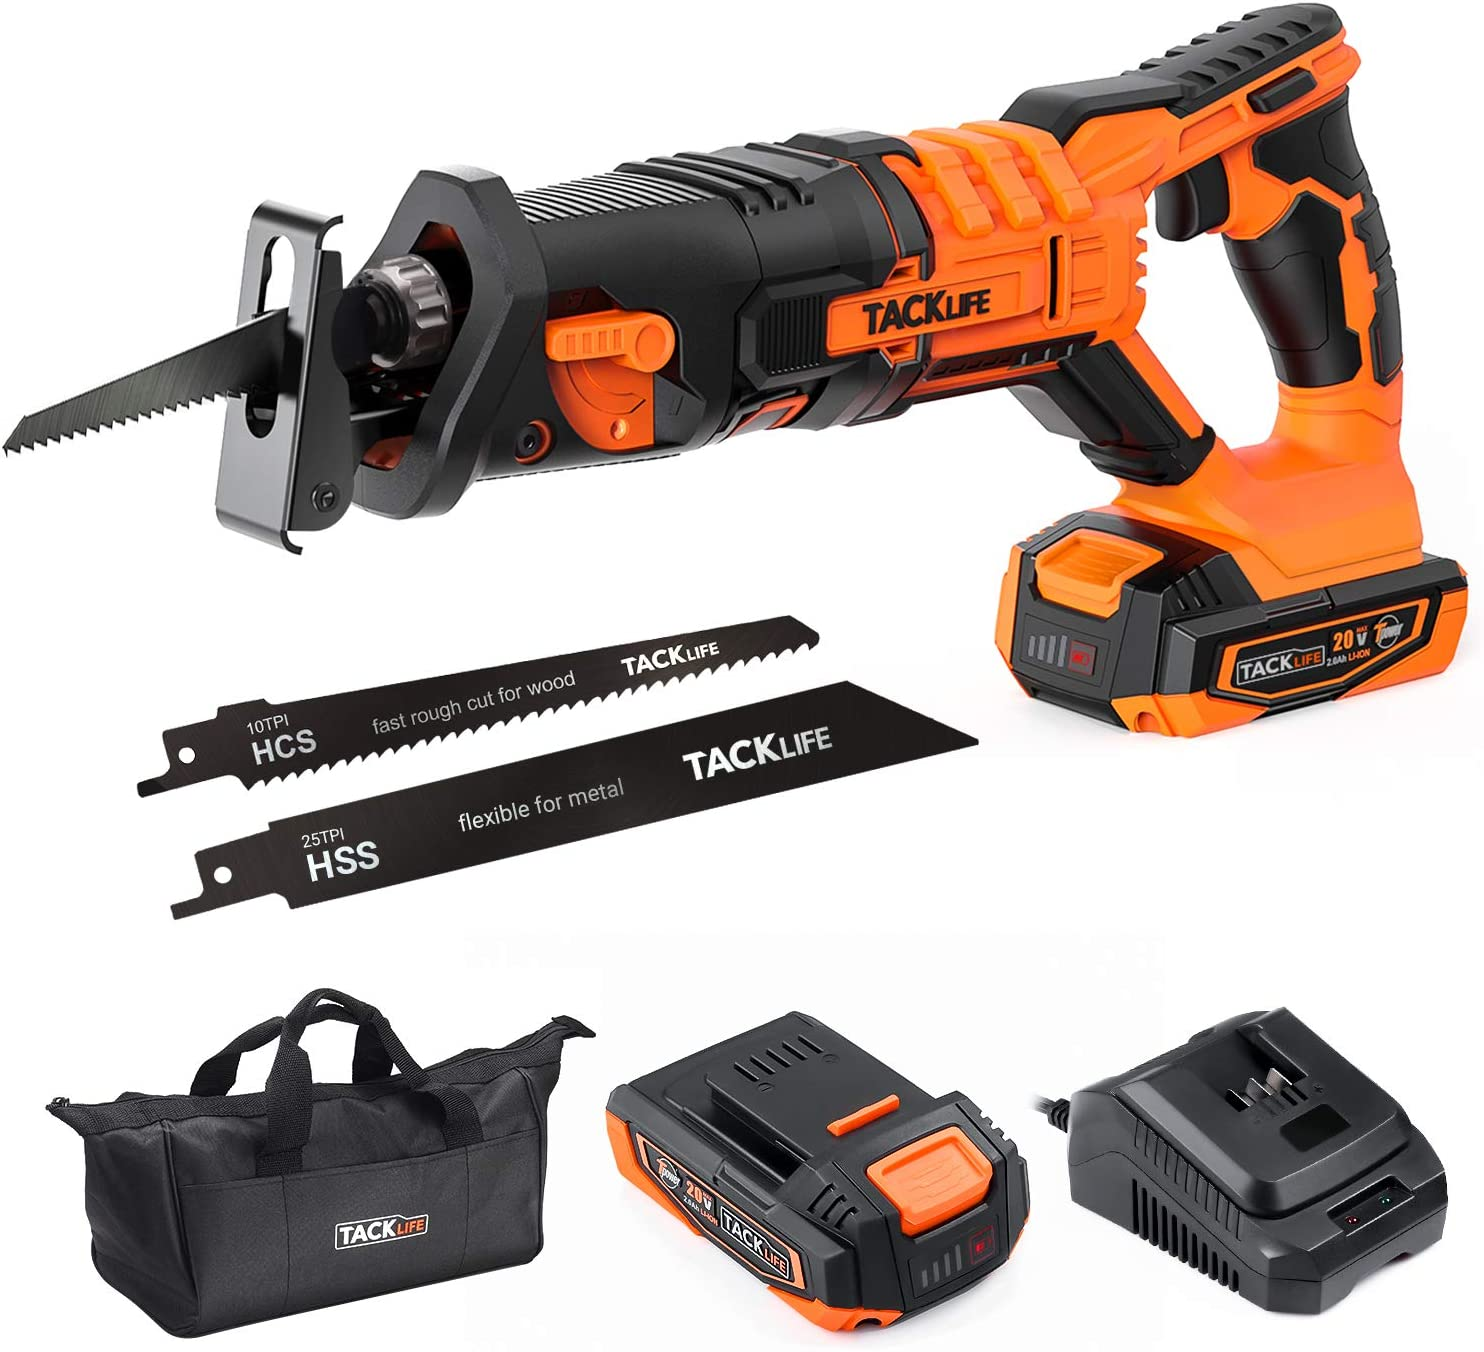 Tool-Free Blade Change 4//5 Stroke Length 2A Lithium Battery /& Charger Portable Bag/ - RES004 TACKLIFE 20V MAX Cordless Reciprocating Saw 0-3000SPM Variable Speed